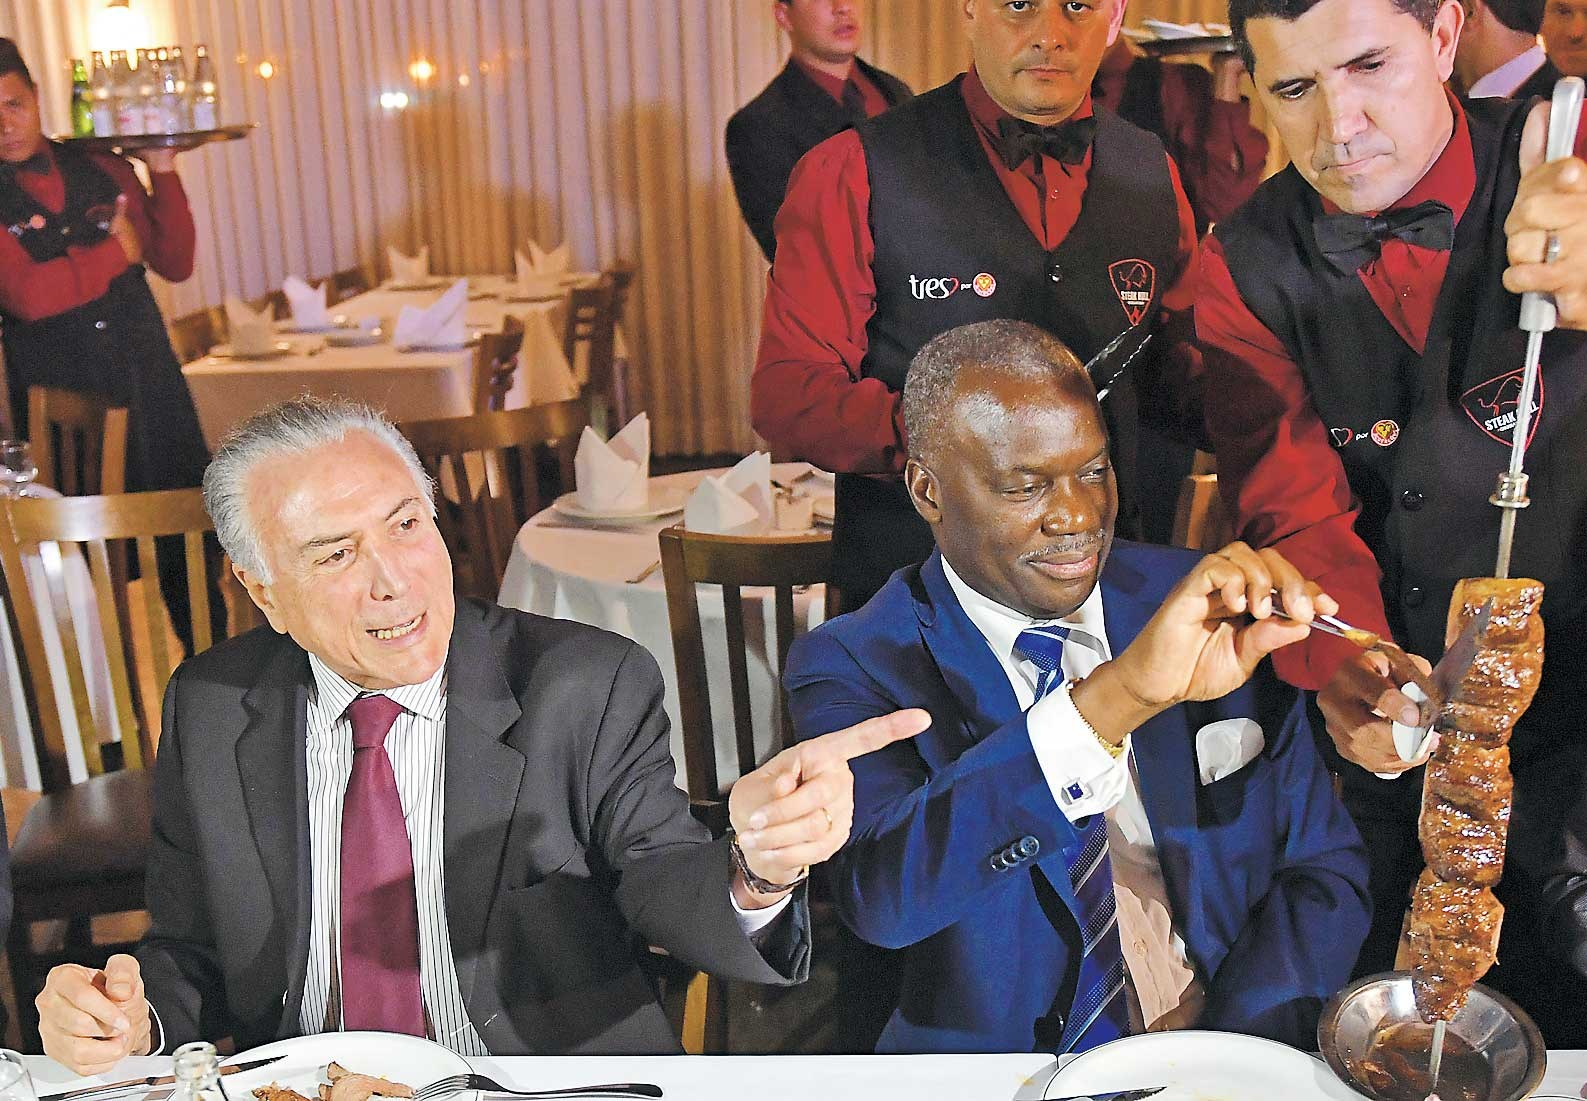 Brazilian President Michel Temer (left) and Angola's ambassador Nelson Manuel Cosme eat barbecue in a steak house in Brasilia on March 19 after a meeting with ambassadors from countries that import Brazilian meat after the scandal over tainted meat exports. — AFP